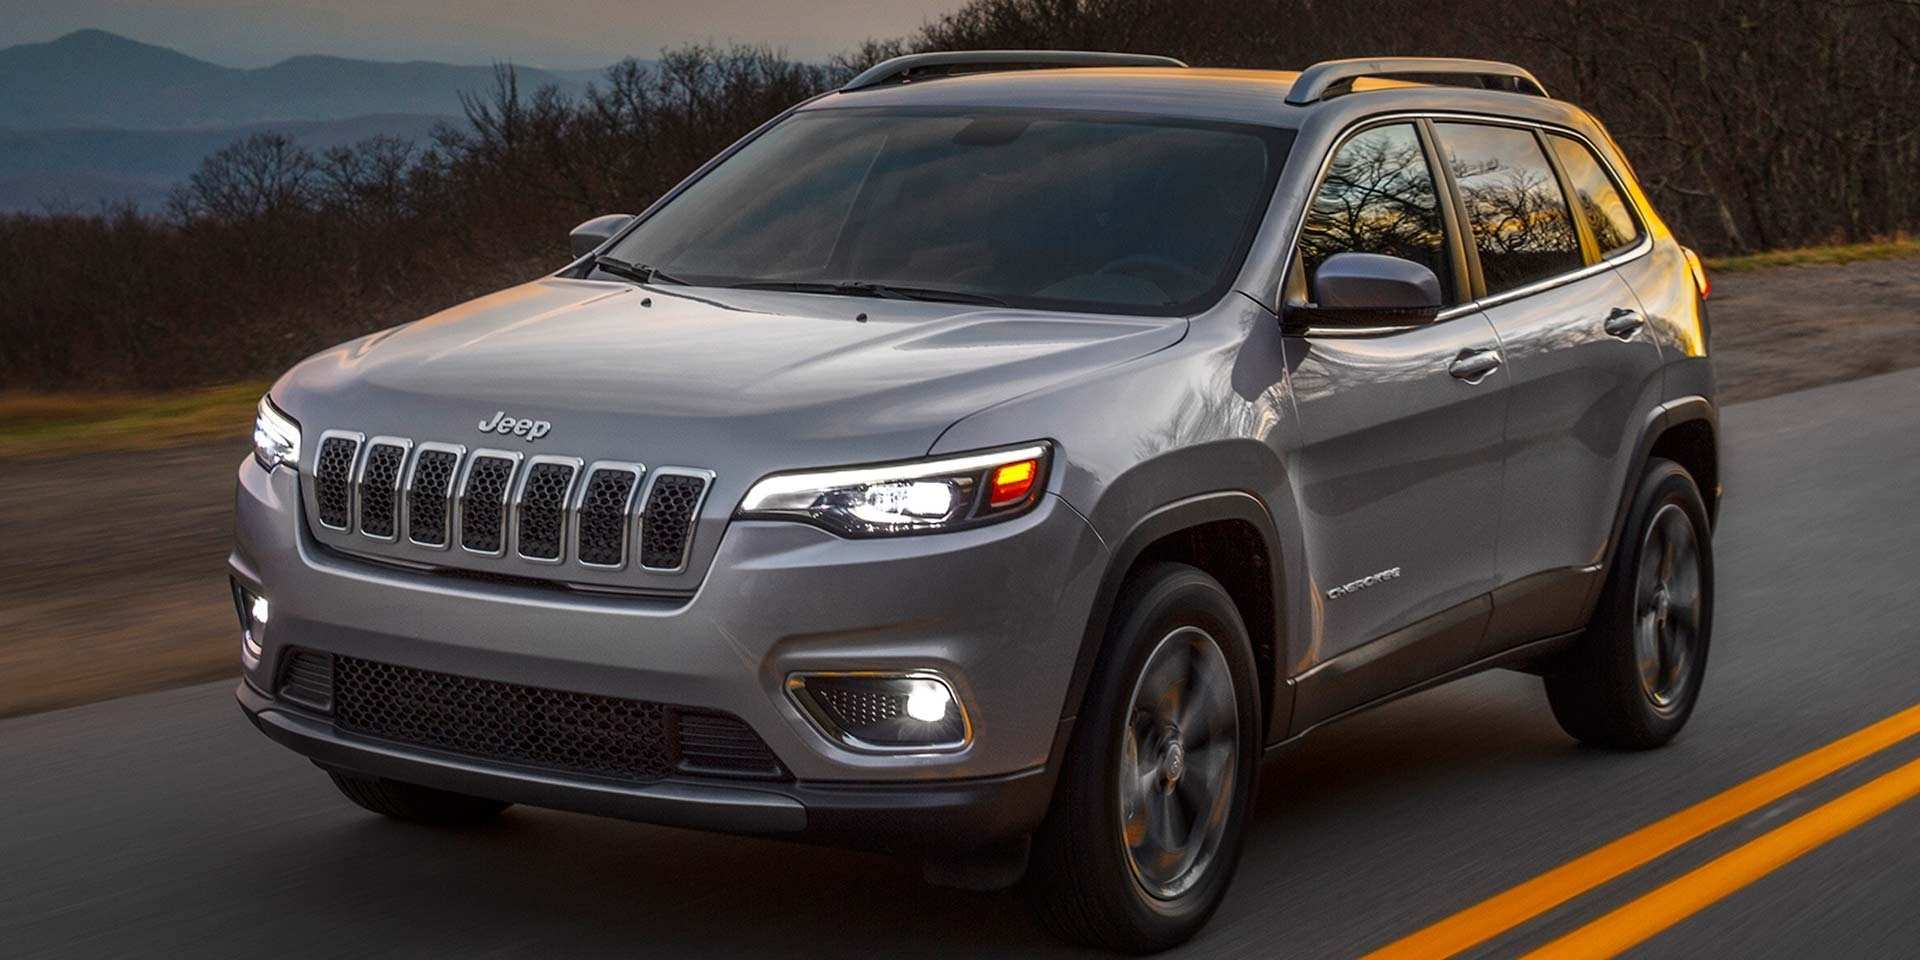 16 New 2019 Jeep Mpg Model for 2019 Jeep Mpg